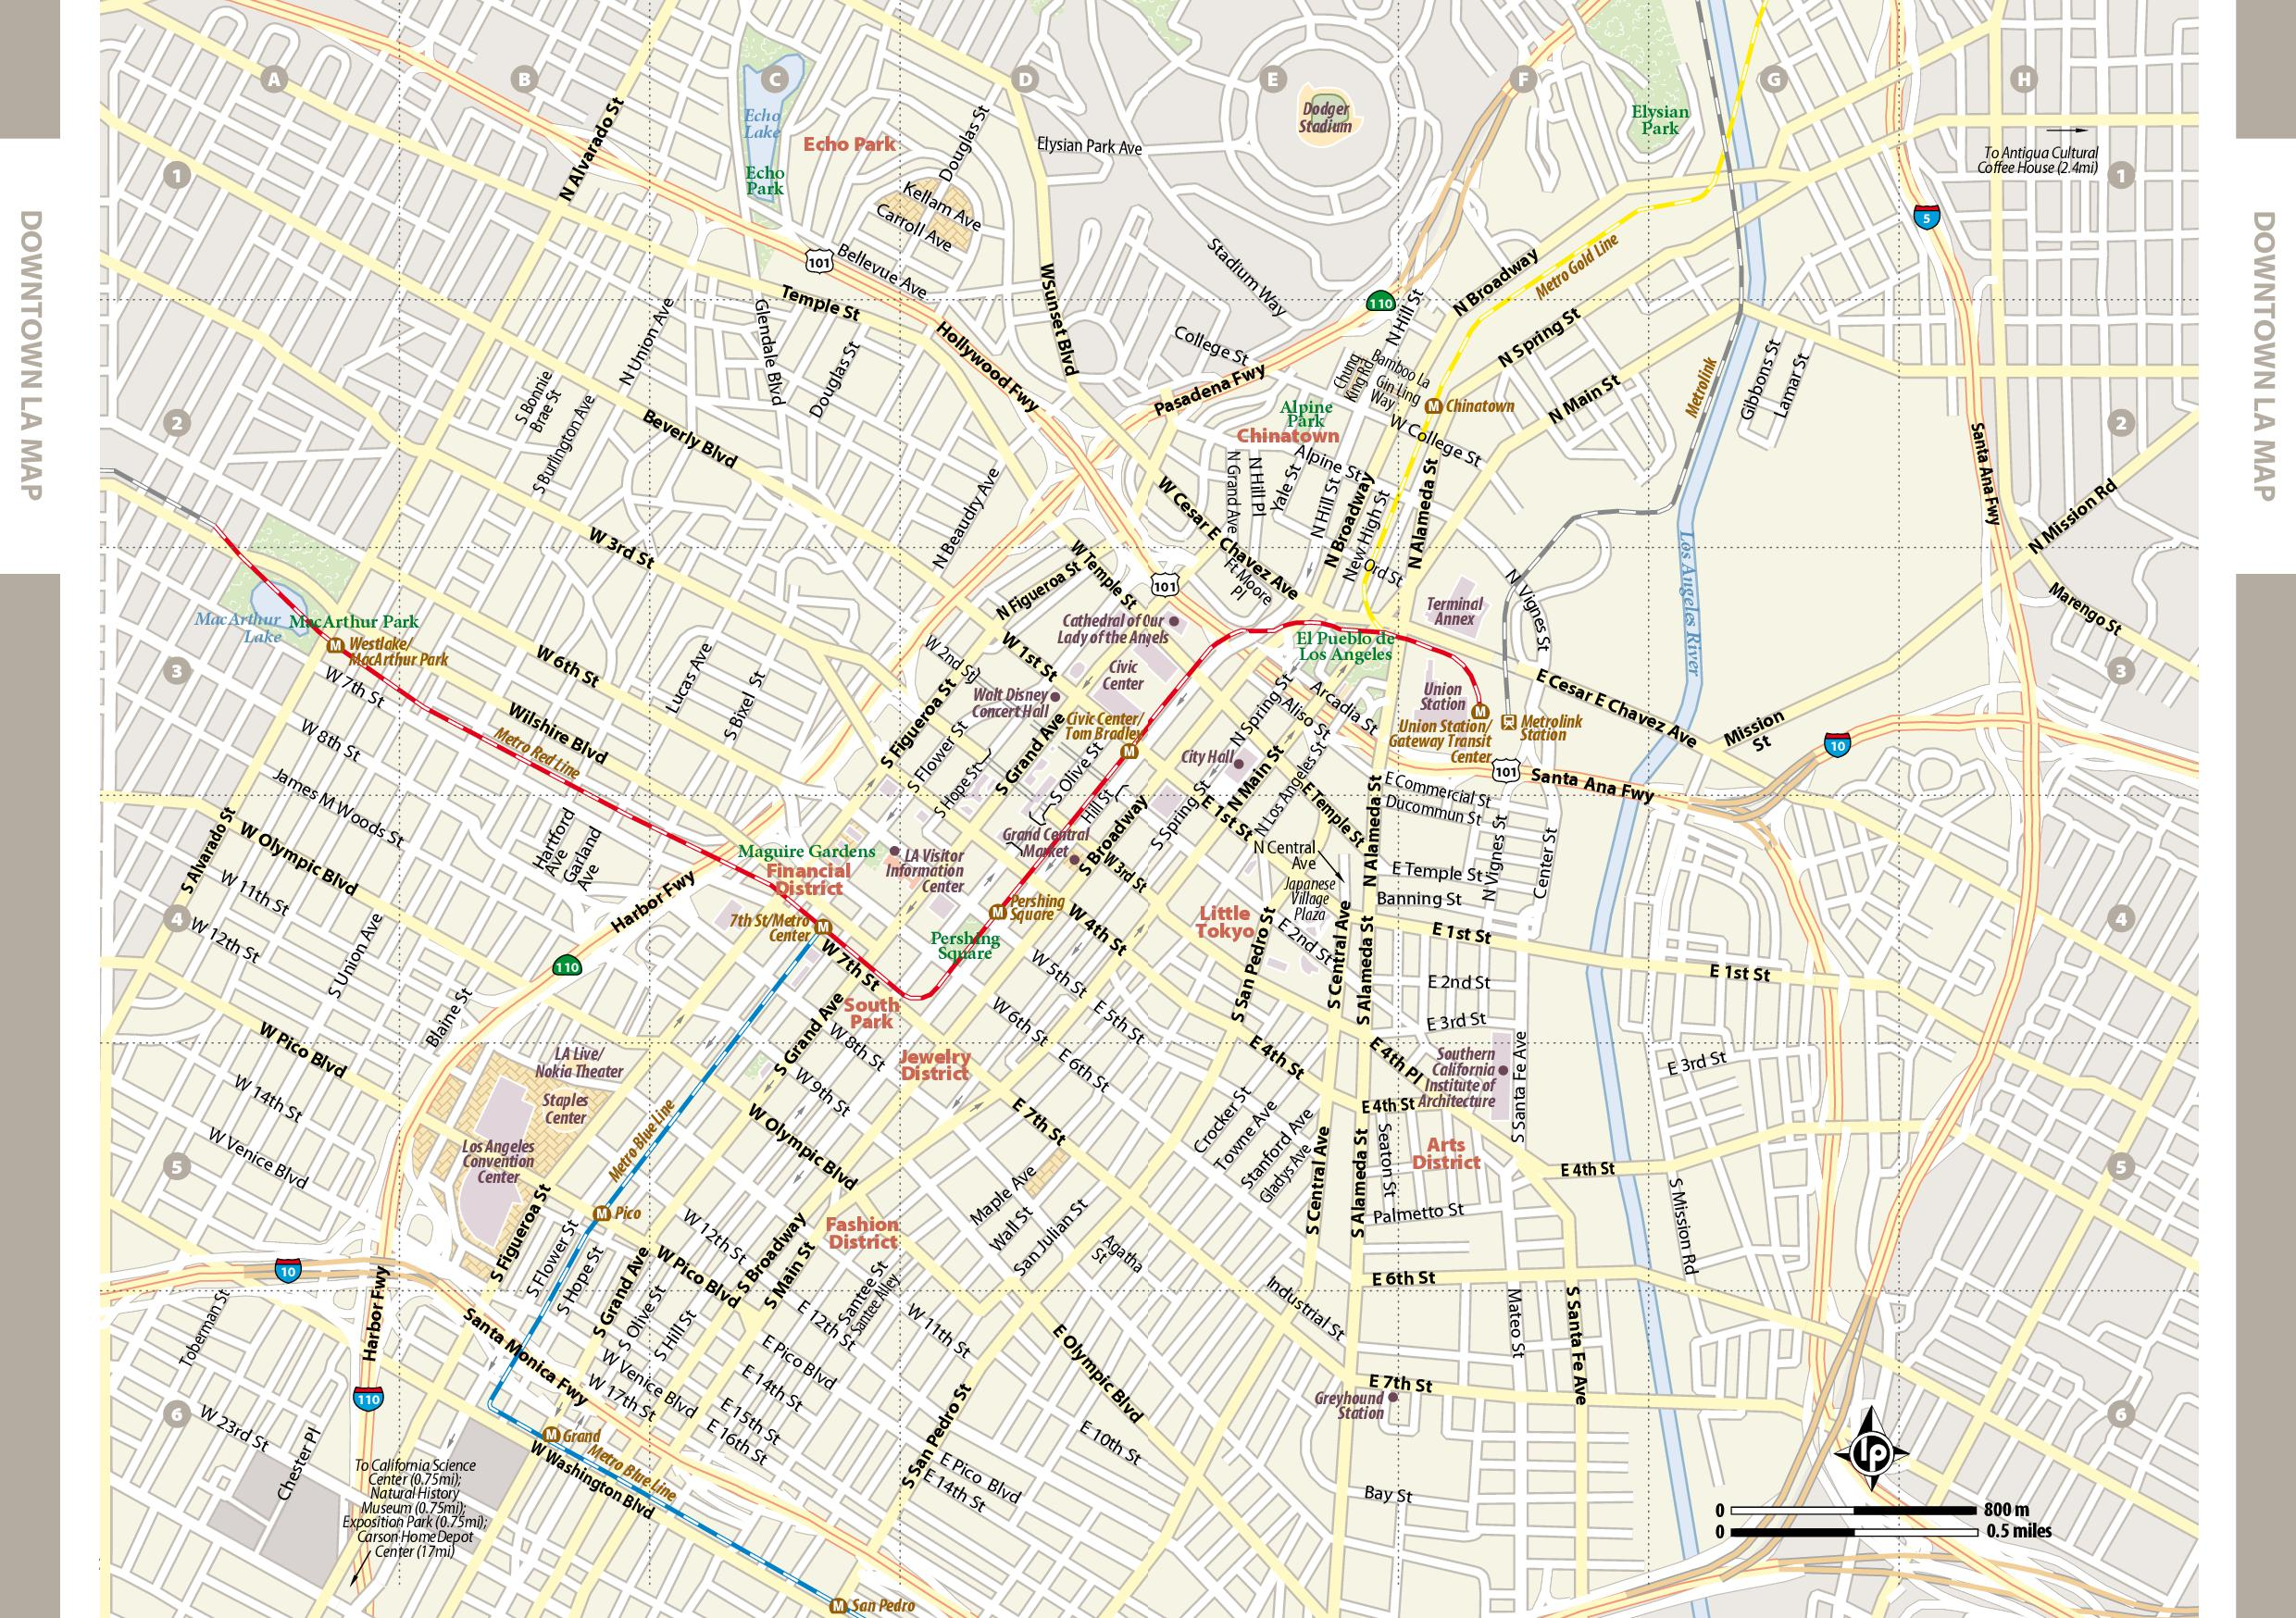 Los Angeles Map Pdf Large Los Angeles Maps for Free Download and Print | High